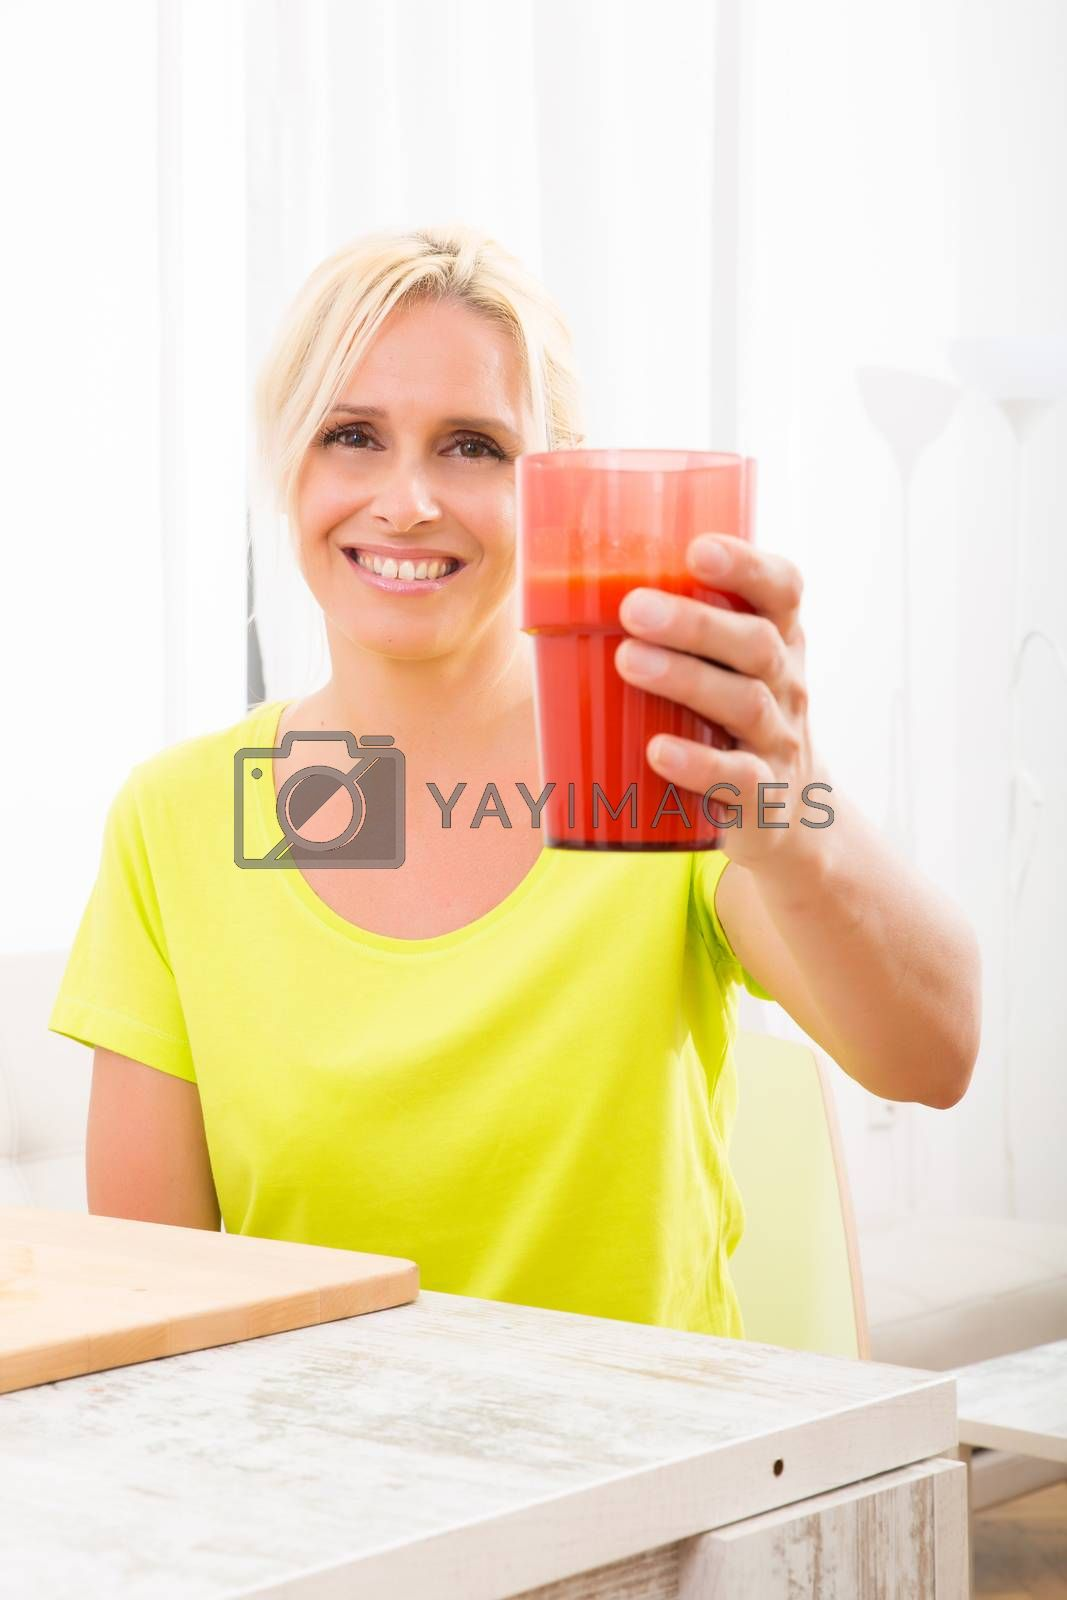 A beautiful mature woman enjoying a smoothie or juice with fruits in the kitchen.